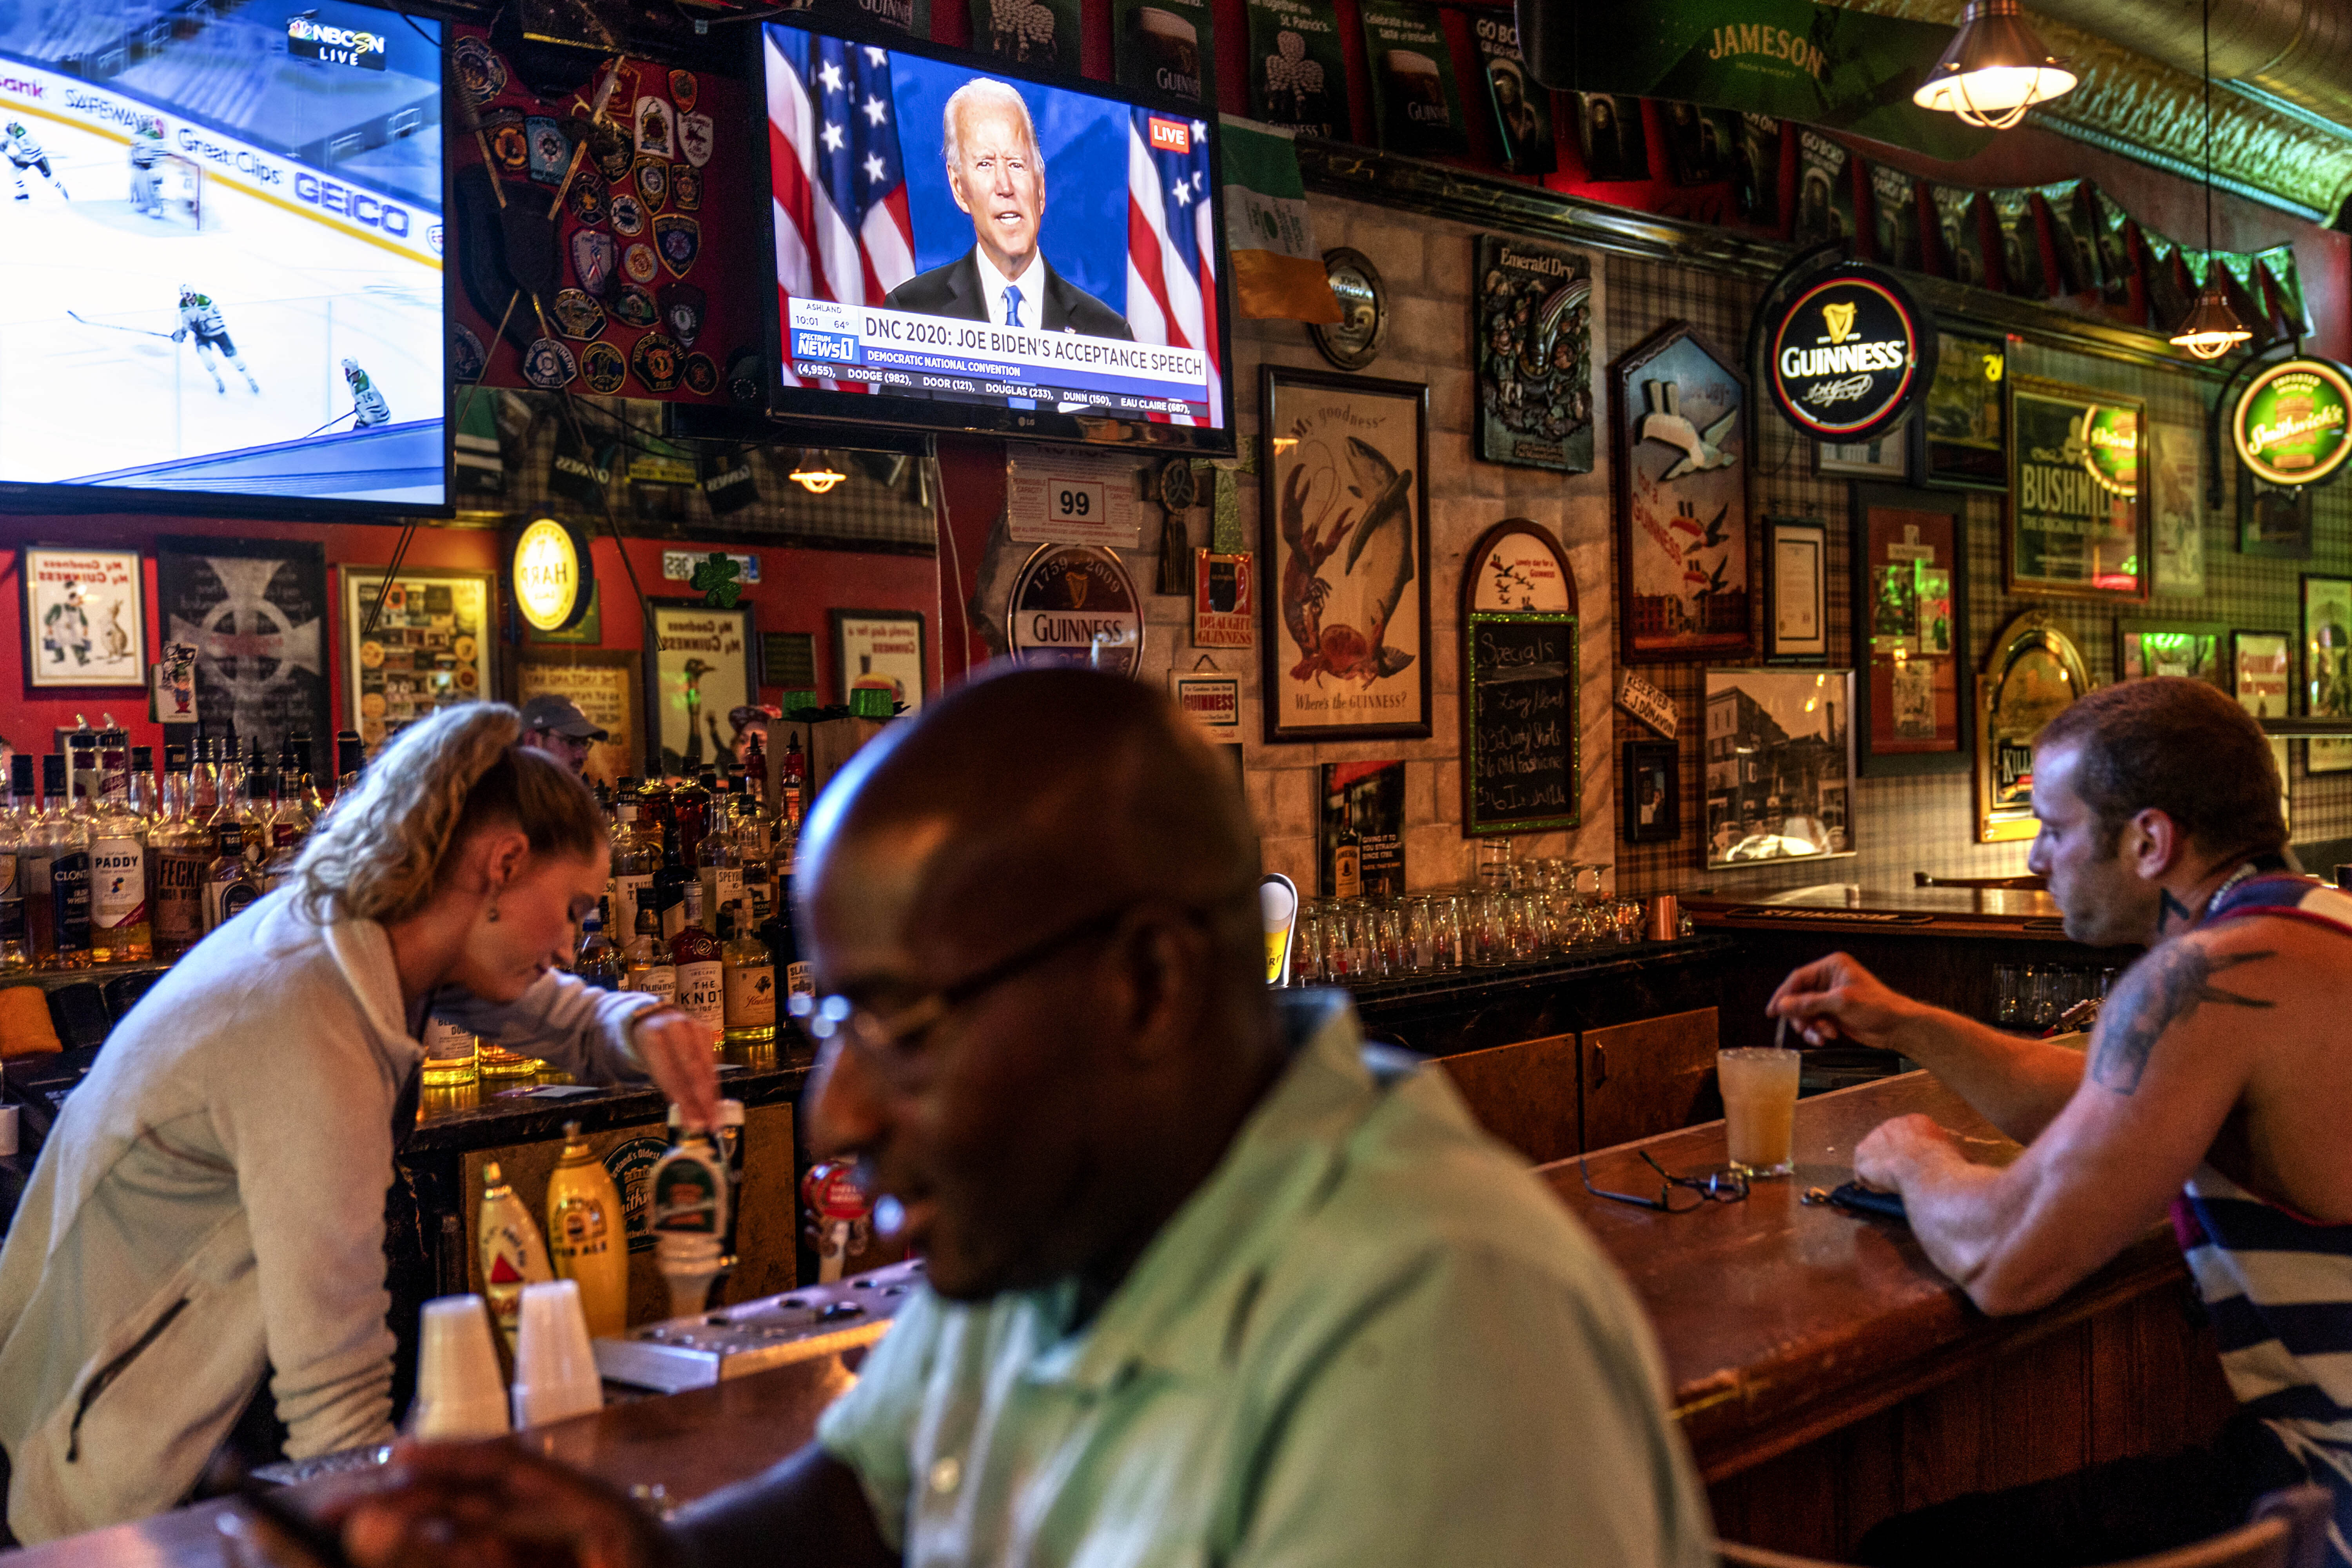 A broadcast of Democratic presidential candidate former Vice President Joe Biden speaking at the Democratic National Convention plays on a television at The Durty Leprechaun in Appleton, Wis., Aug. 20, 2020. Donald Trump won the presidency by wringing tens of thousands of votes out of small towns and medium-sized cities in Wisconsin, Michigan and Pennsylvania. How enduring the divide will be is one of the central tests of the presidential election. Will emotional ties to Trump override assessments of his job performance? (AP Photo/David Goldman)